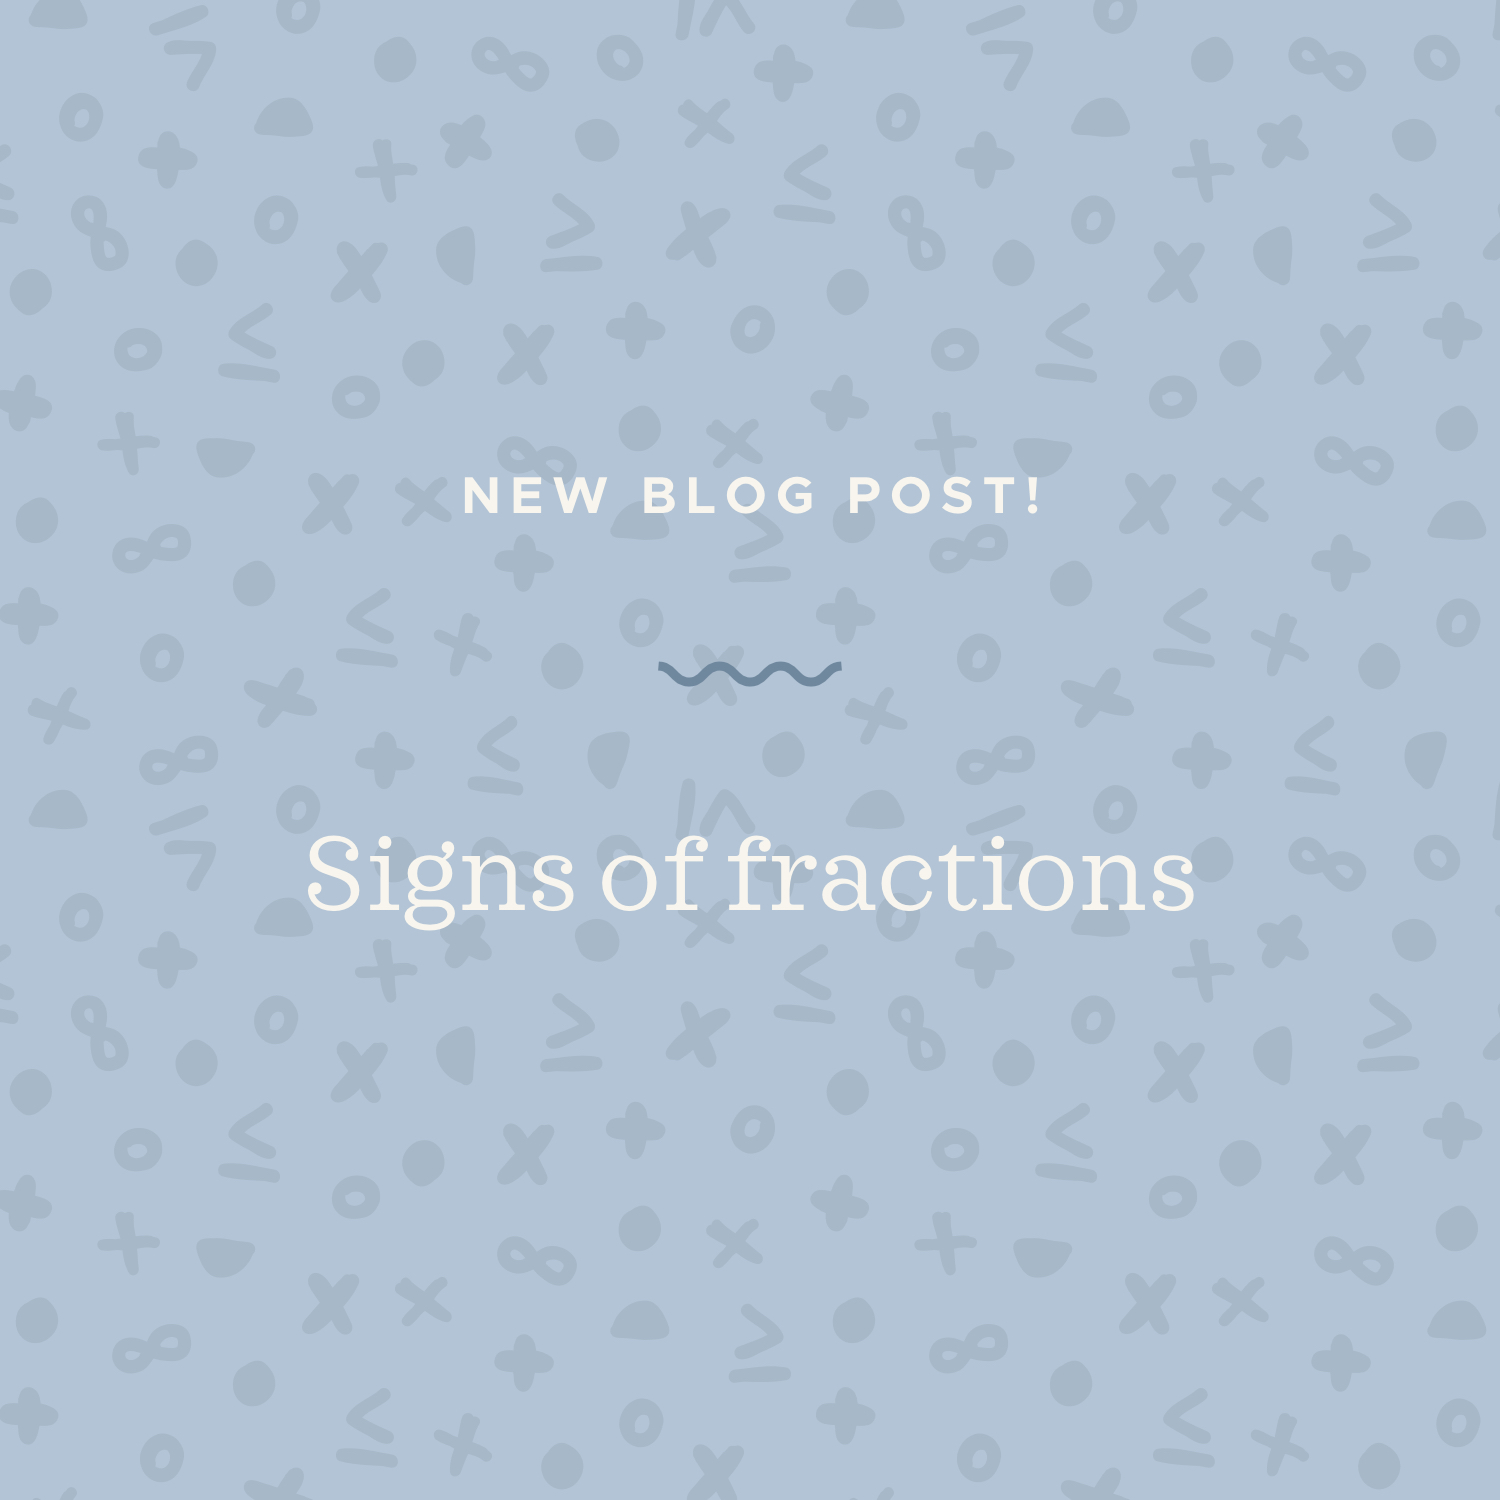 Signs of fractions blog post.jpeg